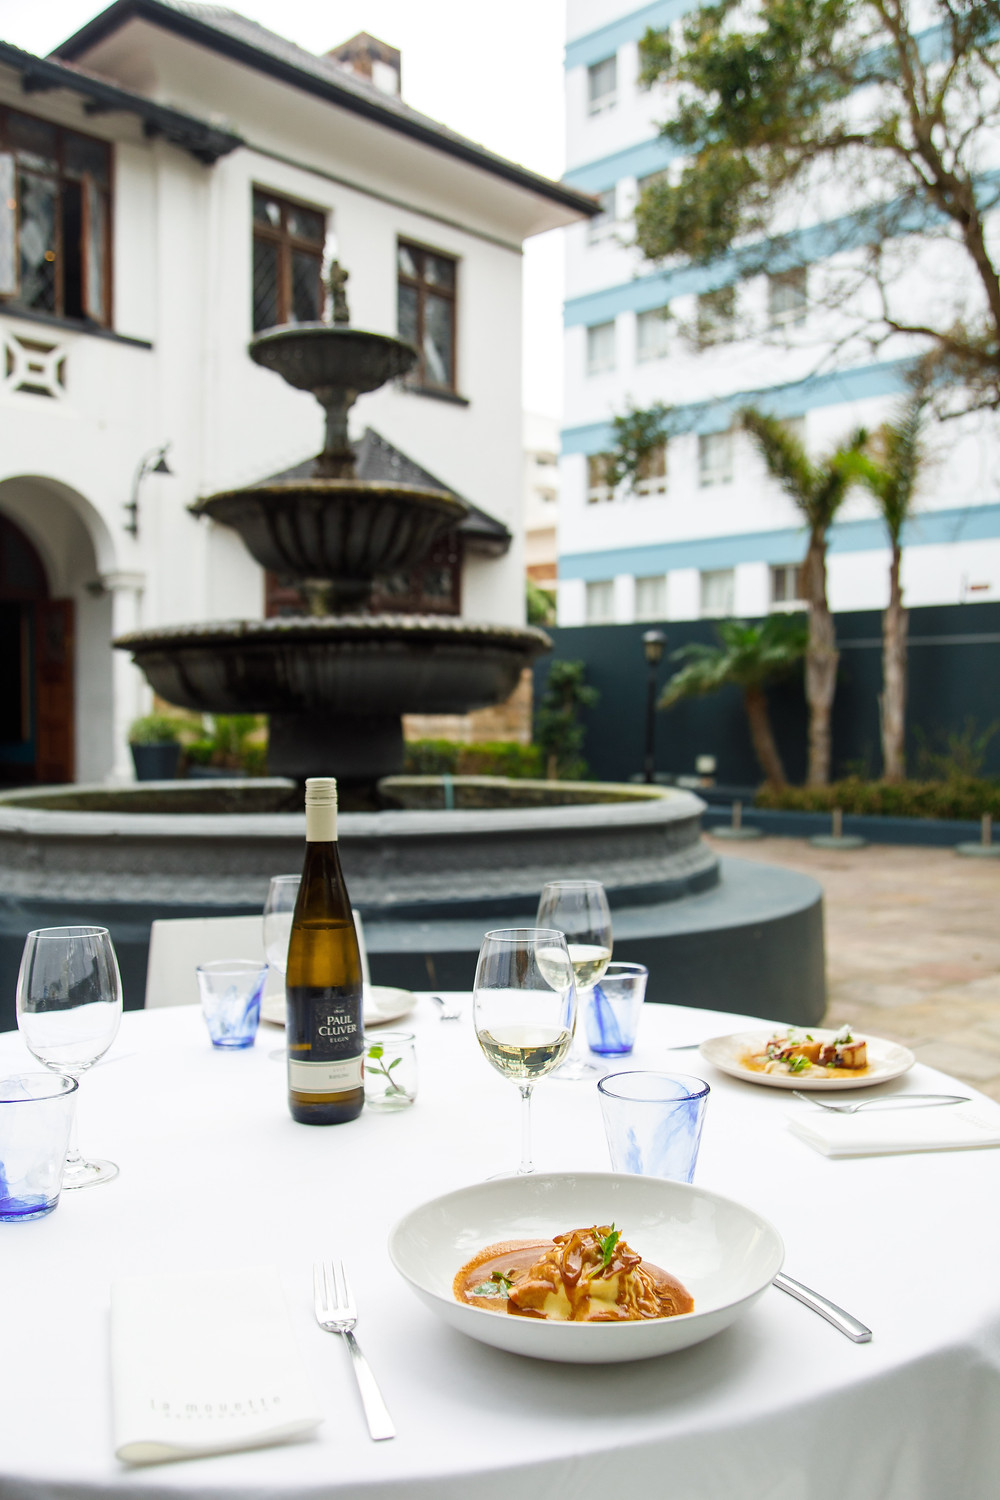 Lunch set up in the beautiful court yard a La Mouette restaurant in cape Town, South Africa. Wine and lunch pairing.